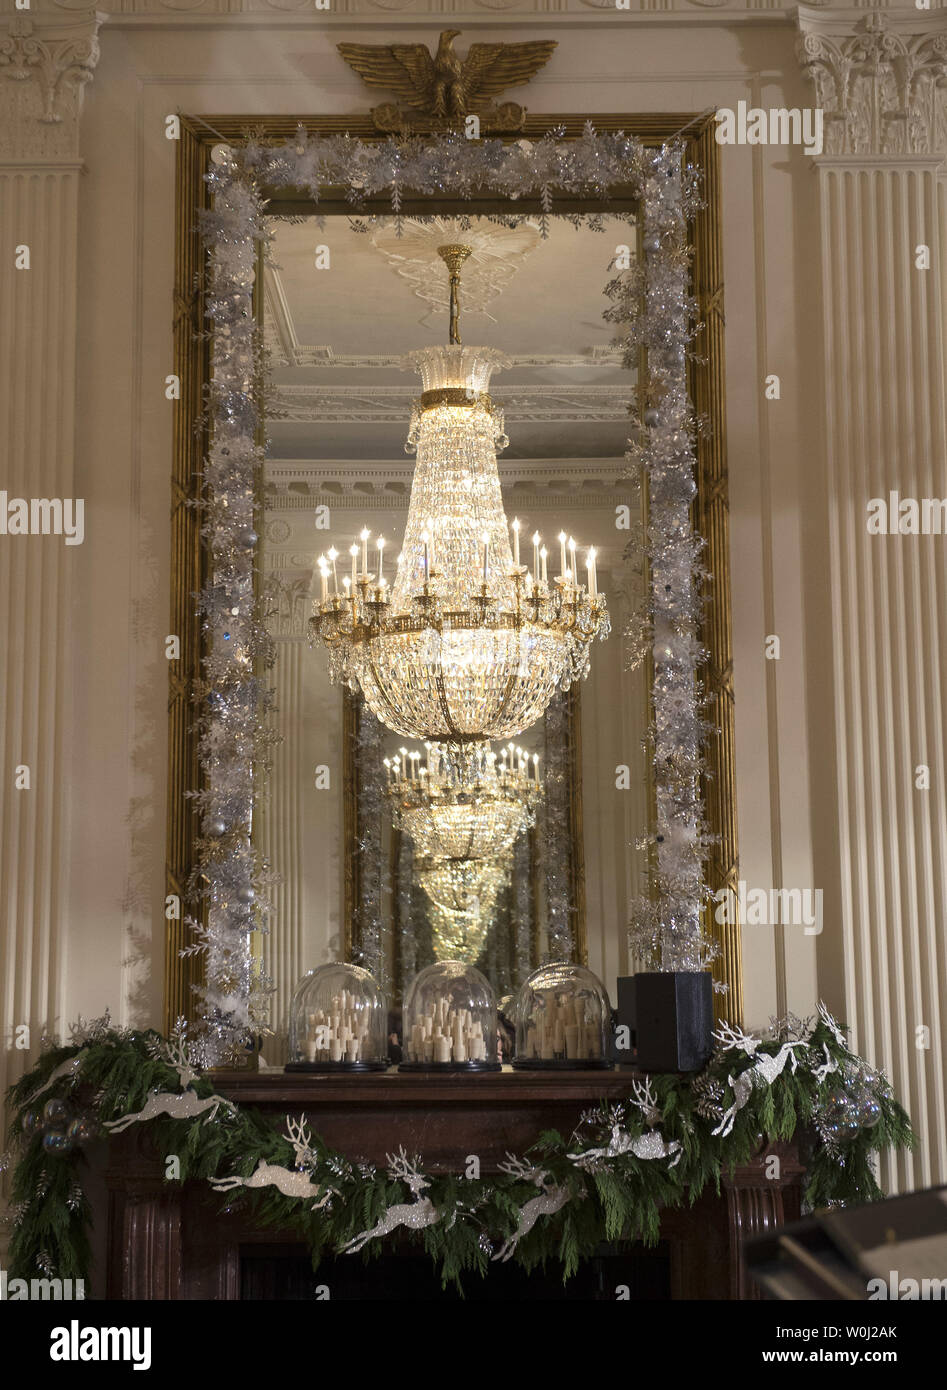 Decorations are seen in the East Room during a holiday tour at the White House in Washington, D.C. on December 2, 2015. This year's team is 'A Timeless Tradition, and reflects long-held traditions cherished across America and commemorates extradorinaiy moments that help shaped the county. Photo by Kevin Dietsch/UPI. - Stock Image